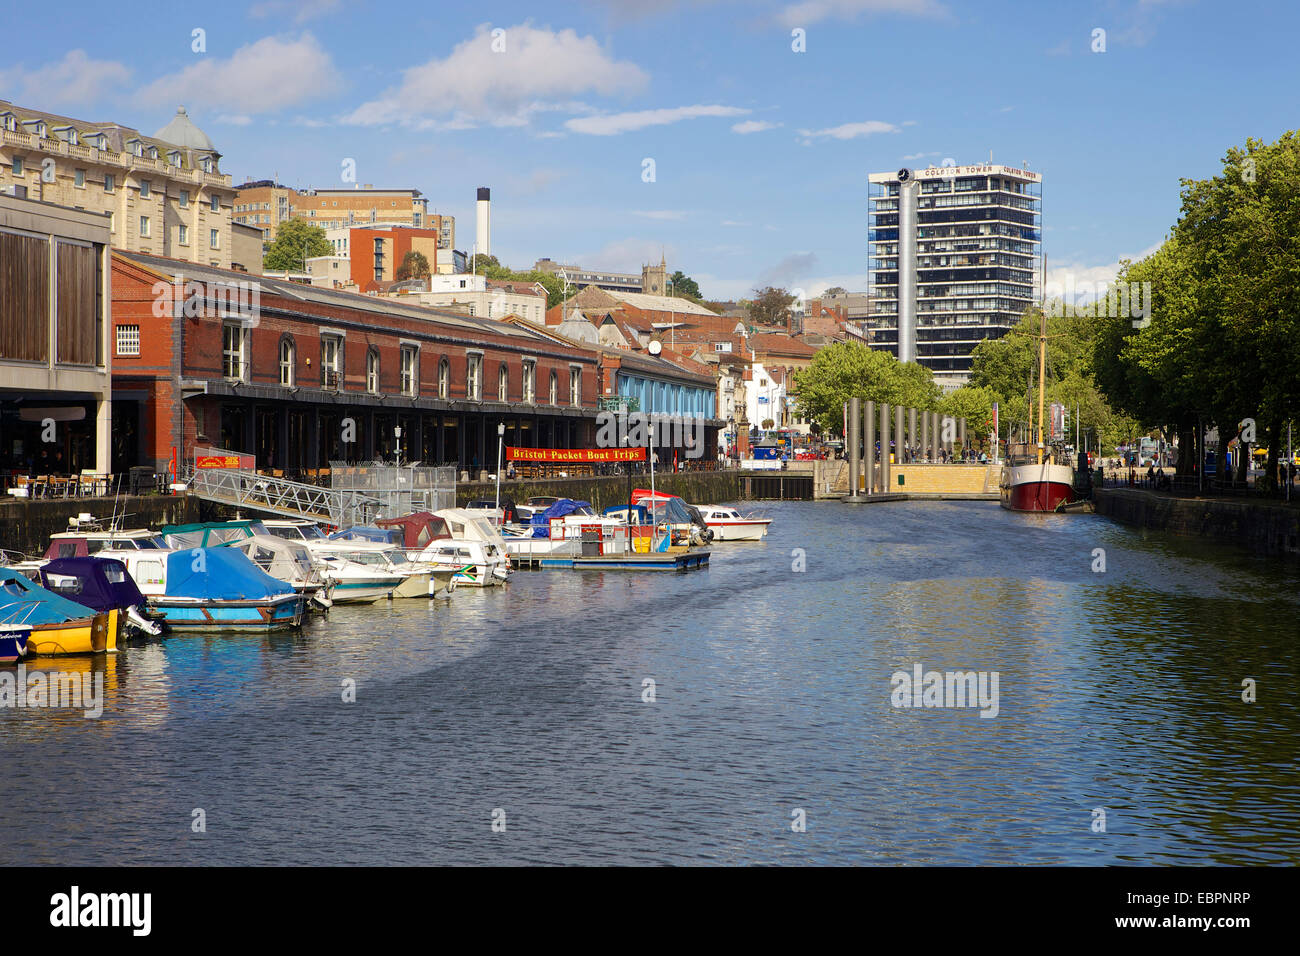 Bordeaux Quay and Watershed and Harbourside in Bristol, England, United Kingdom, Europe - Stock Image